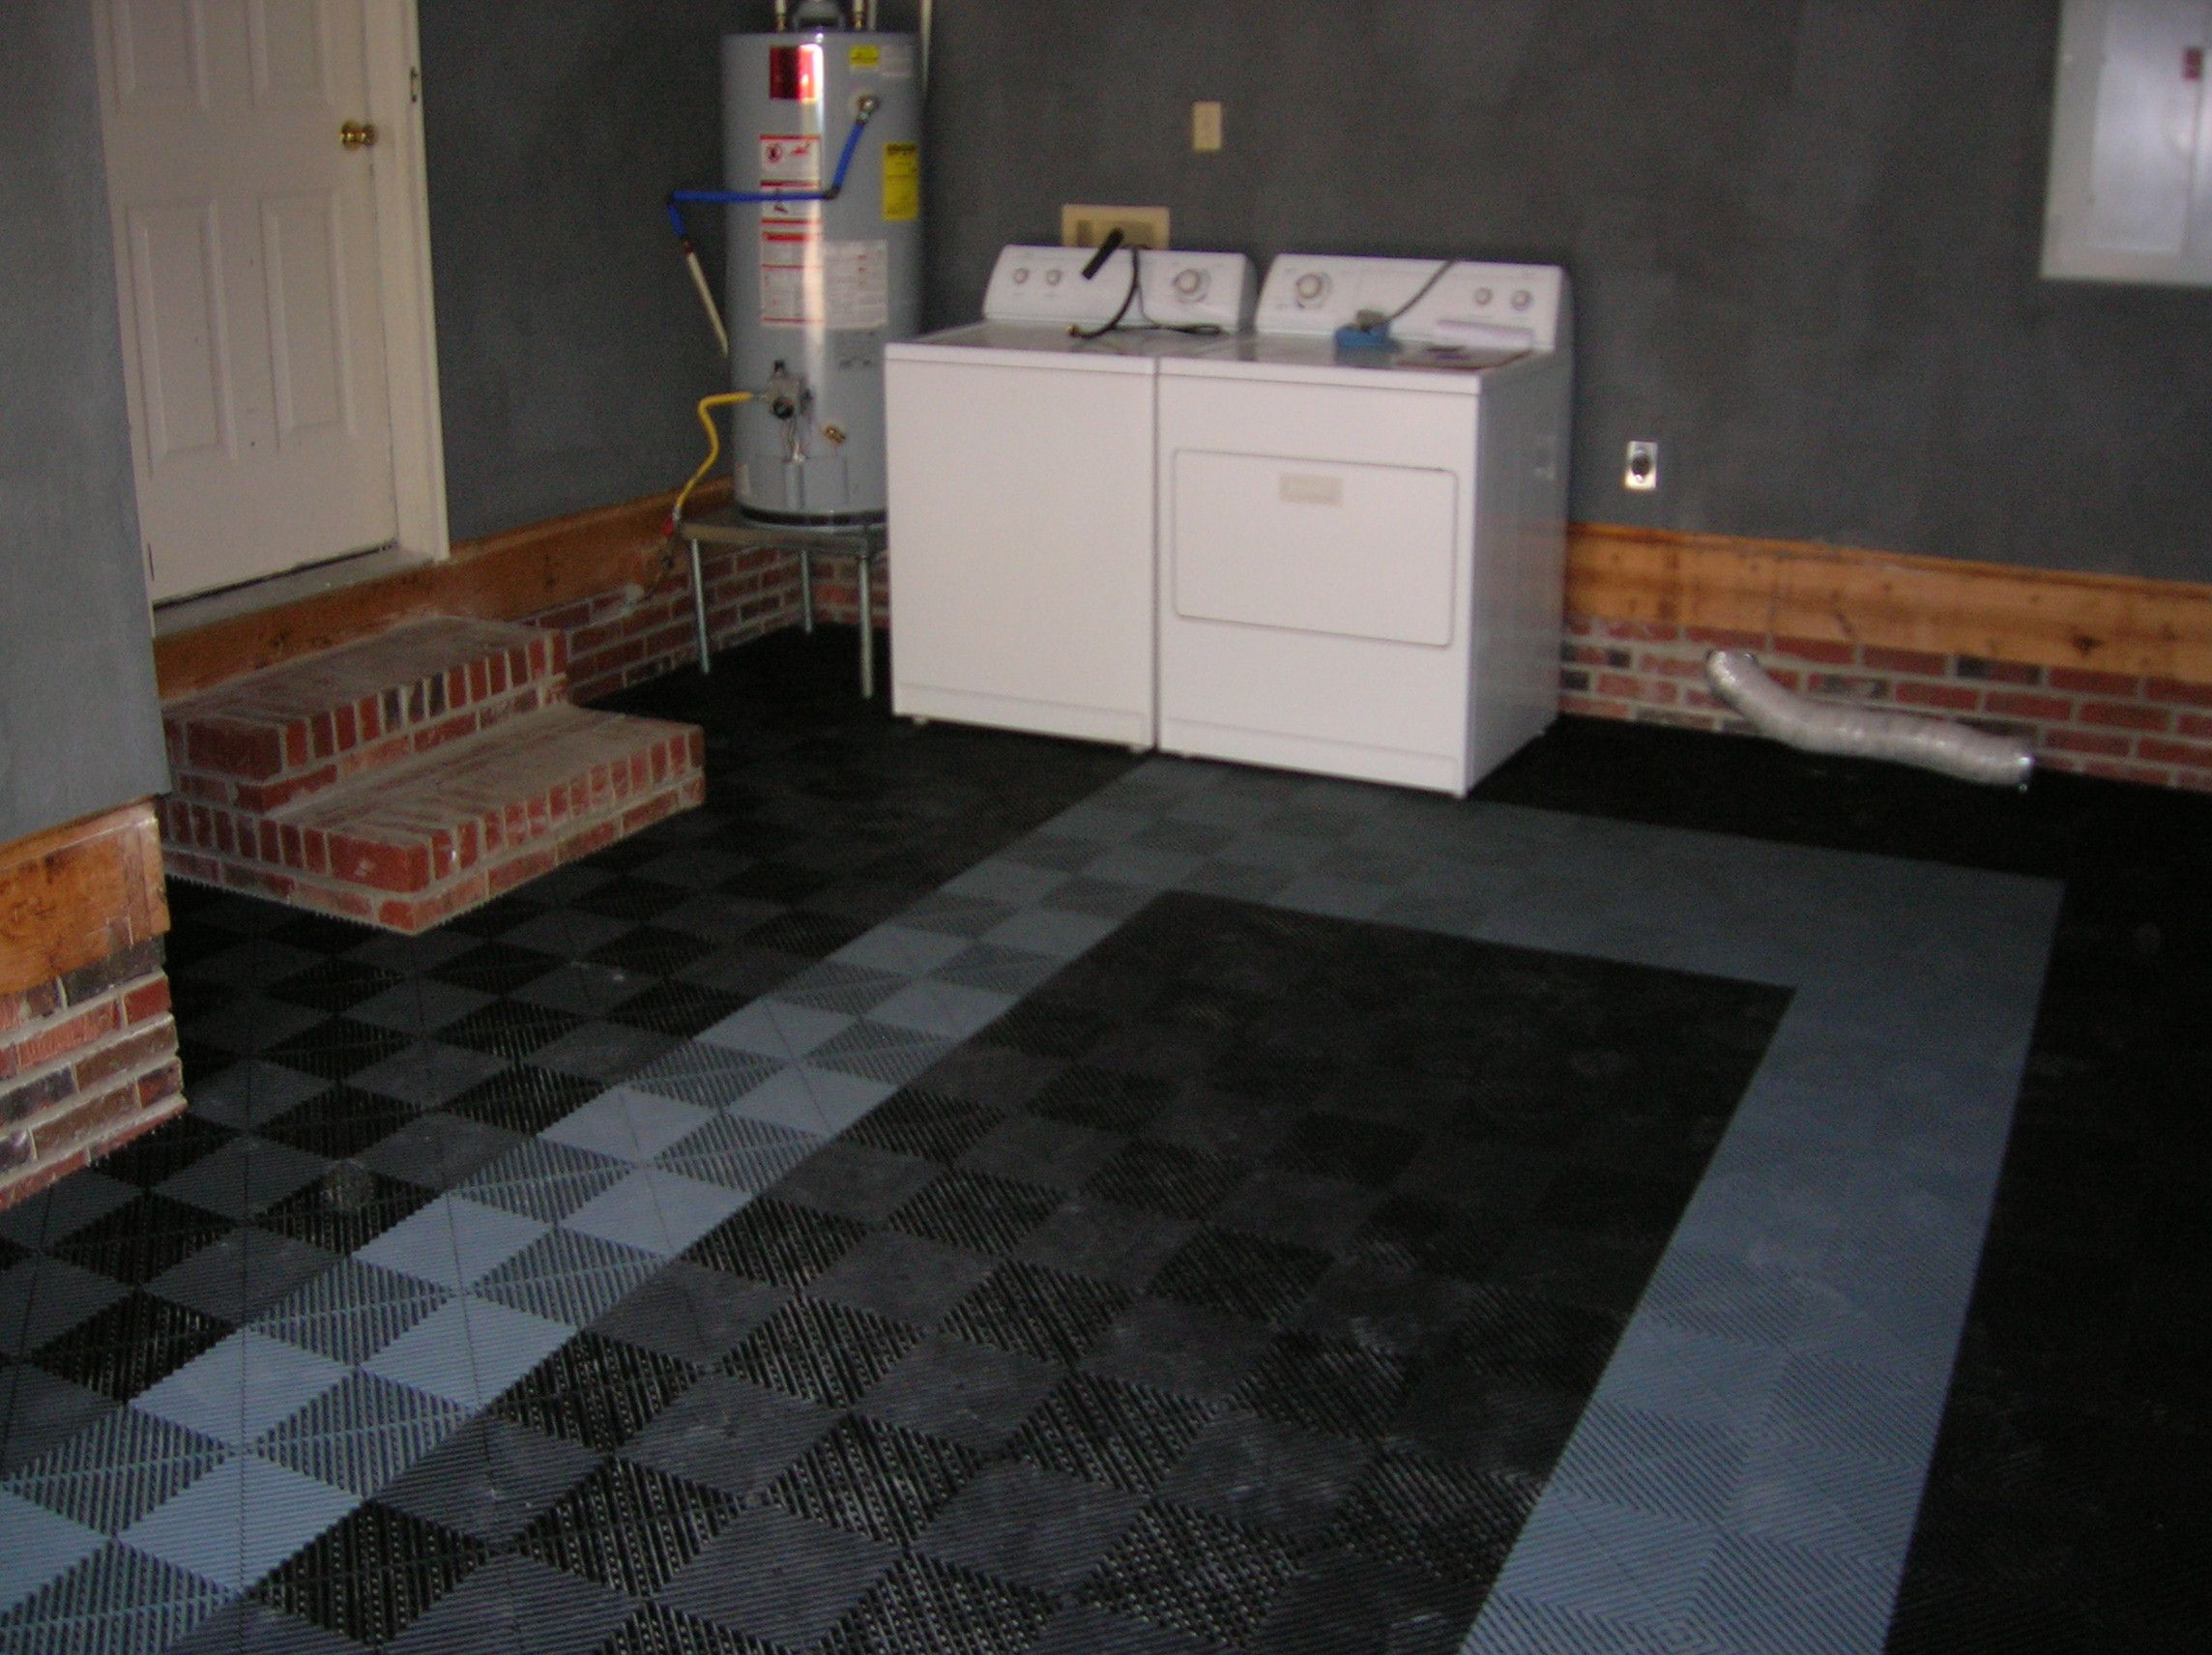 Traxtile Garage Flooring Or Some Call It Ribtrax Ideas For The - Traxtile flooring